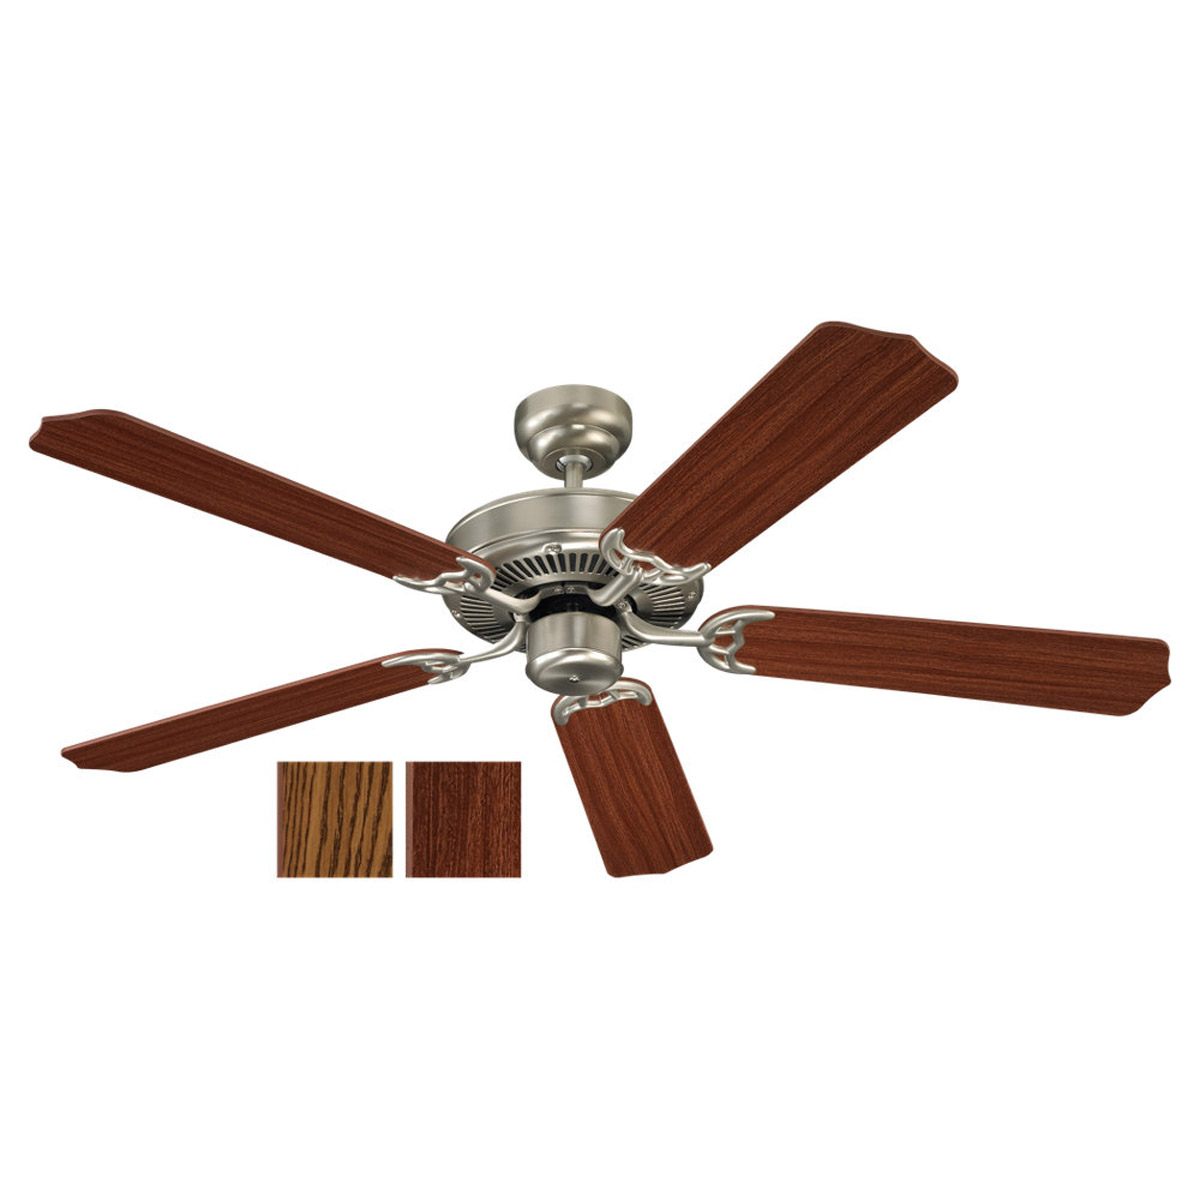 Sea Gull Lighting 52in 5 Blade Fan in Brushed Nickel 15030-962